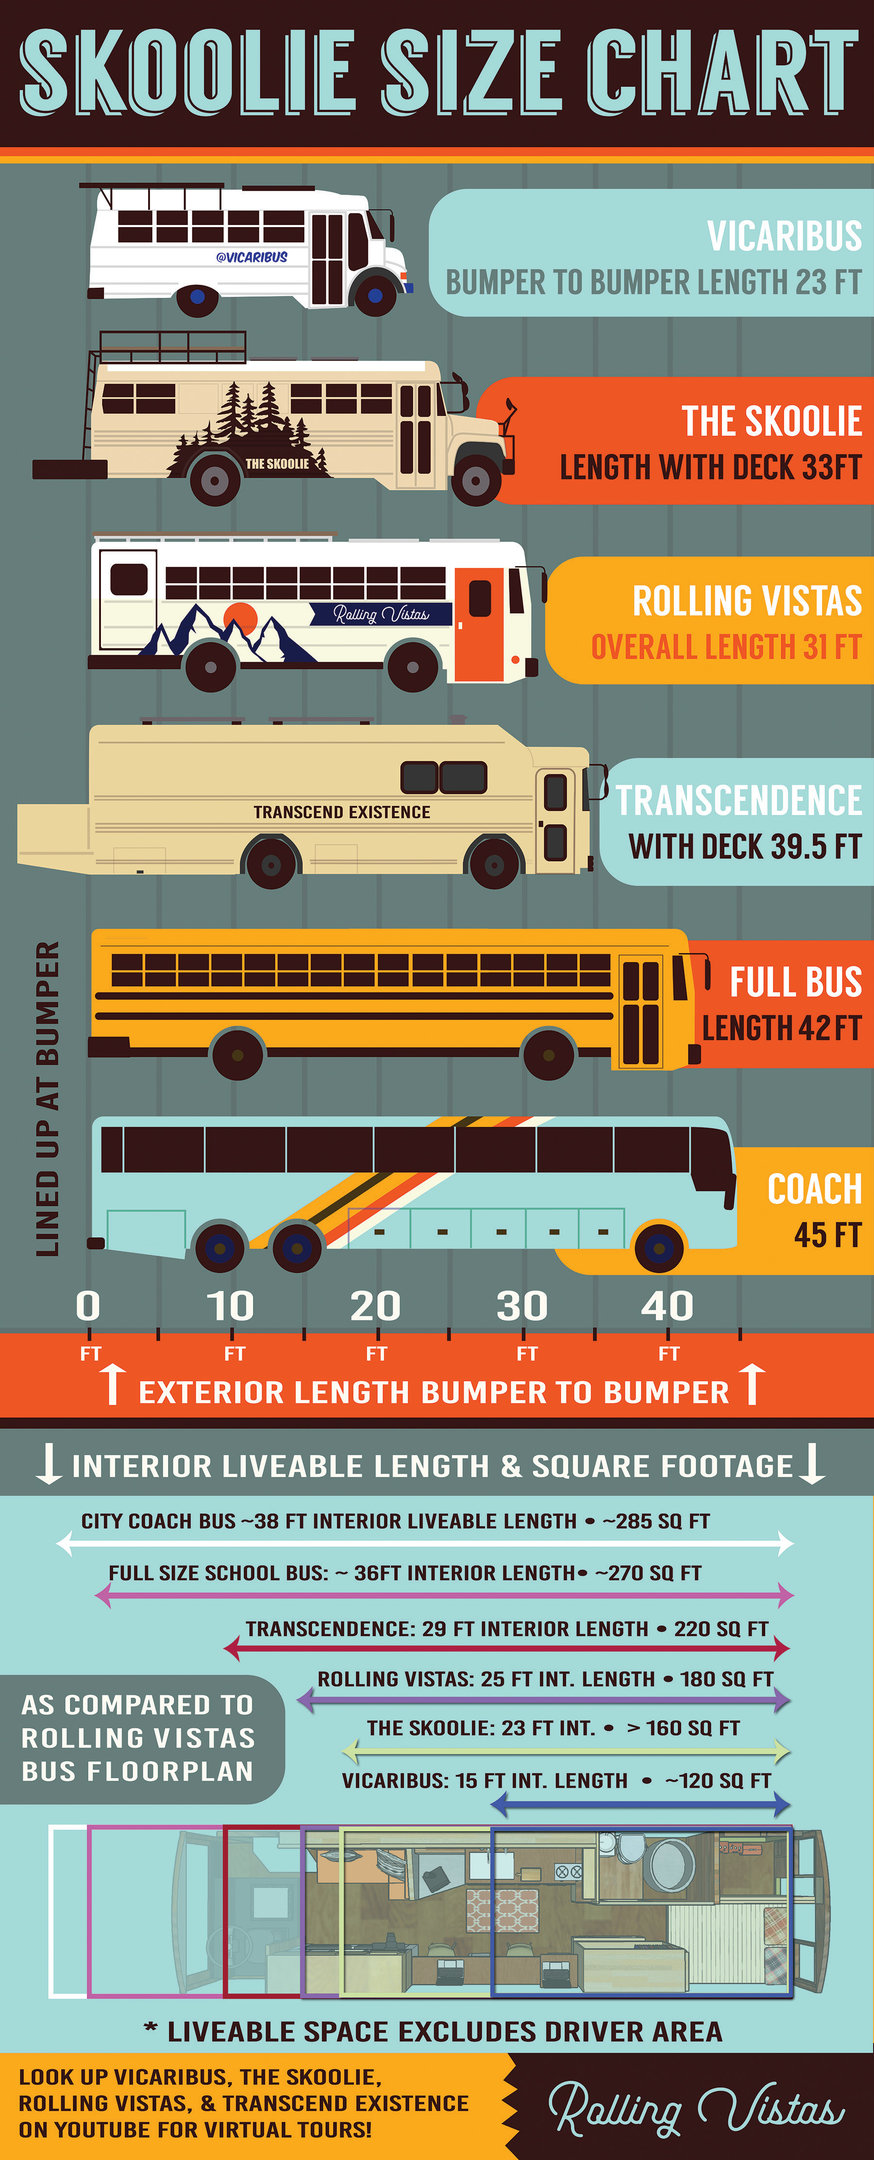 Bus_Size_infographic-01.jpg